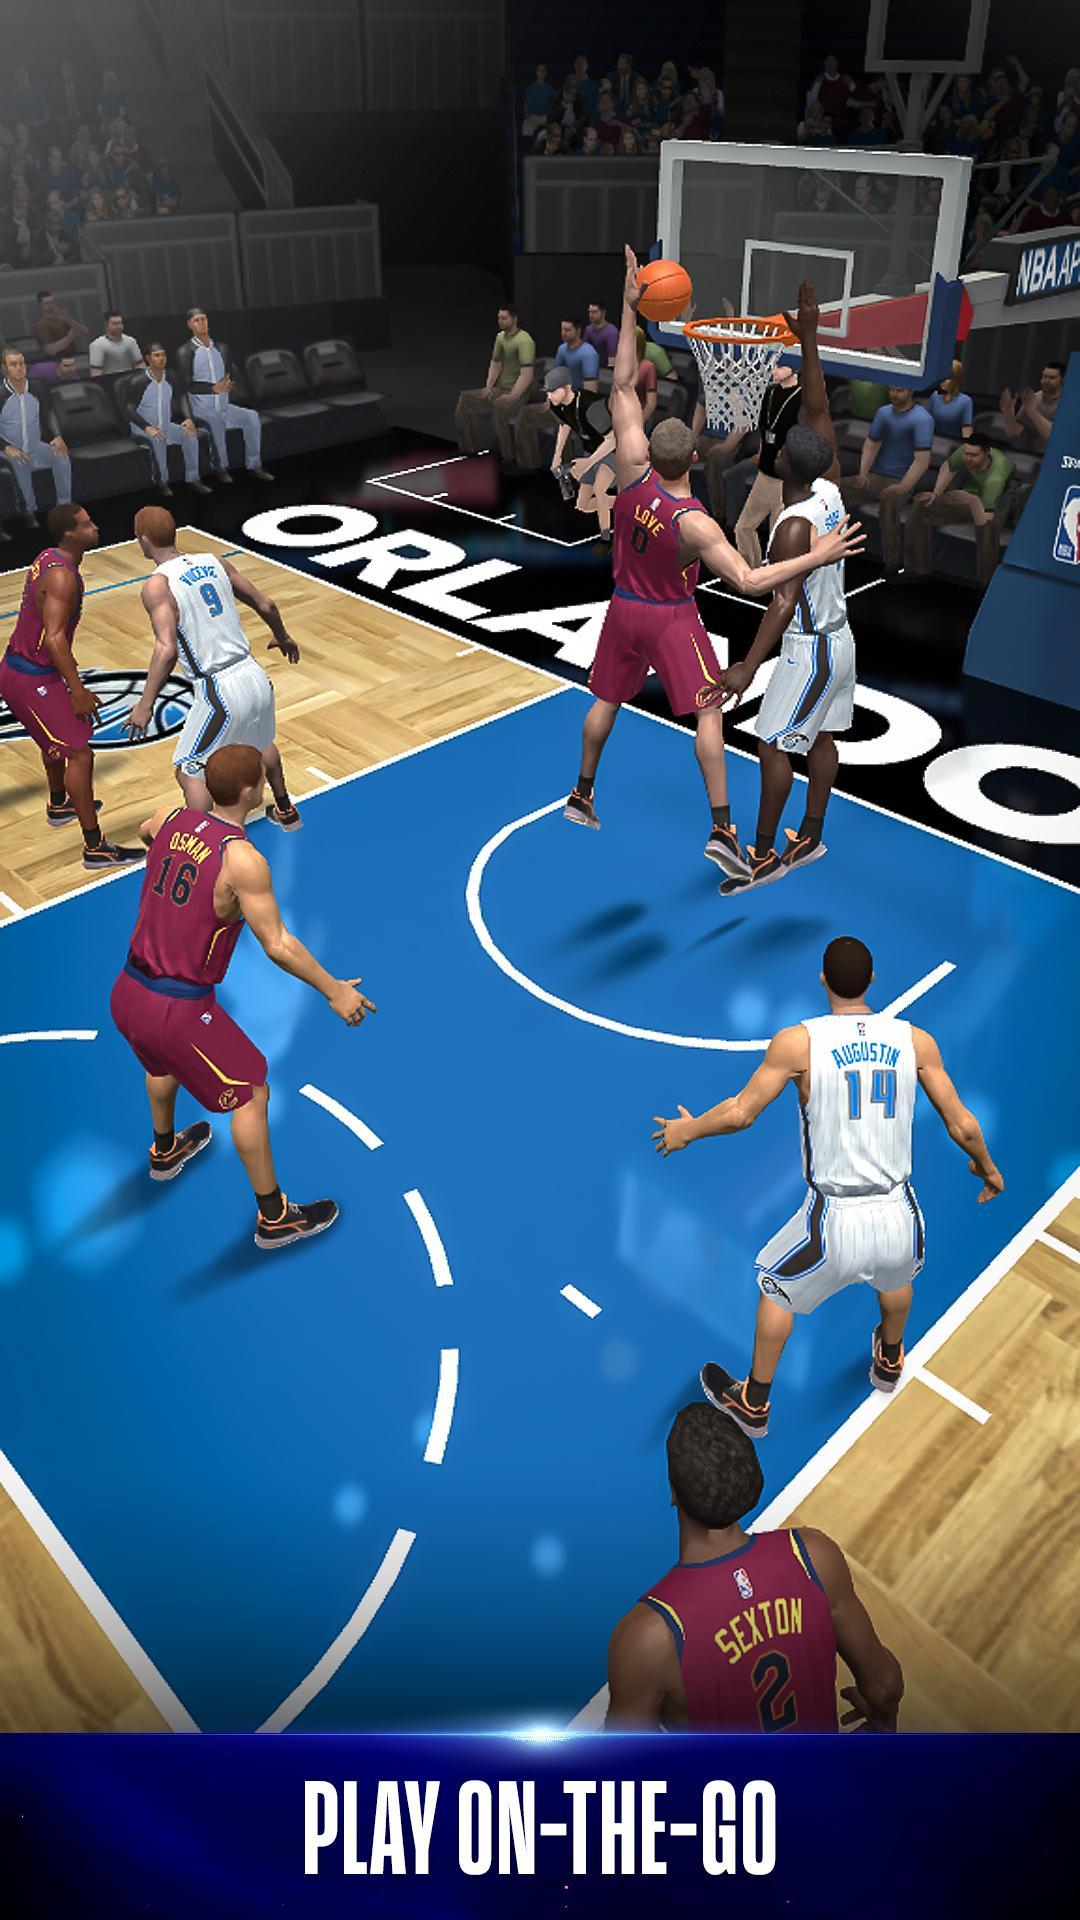 NBA NOW Mobile Basketball Game 1.5.4 Screenshot 7